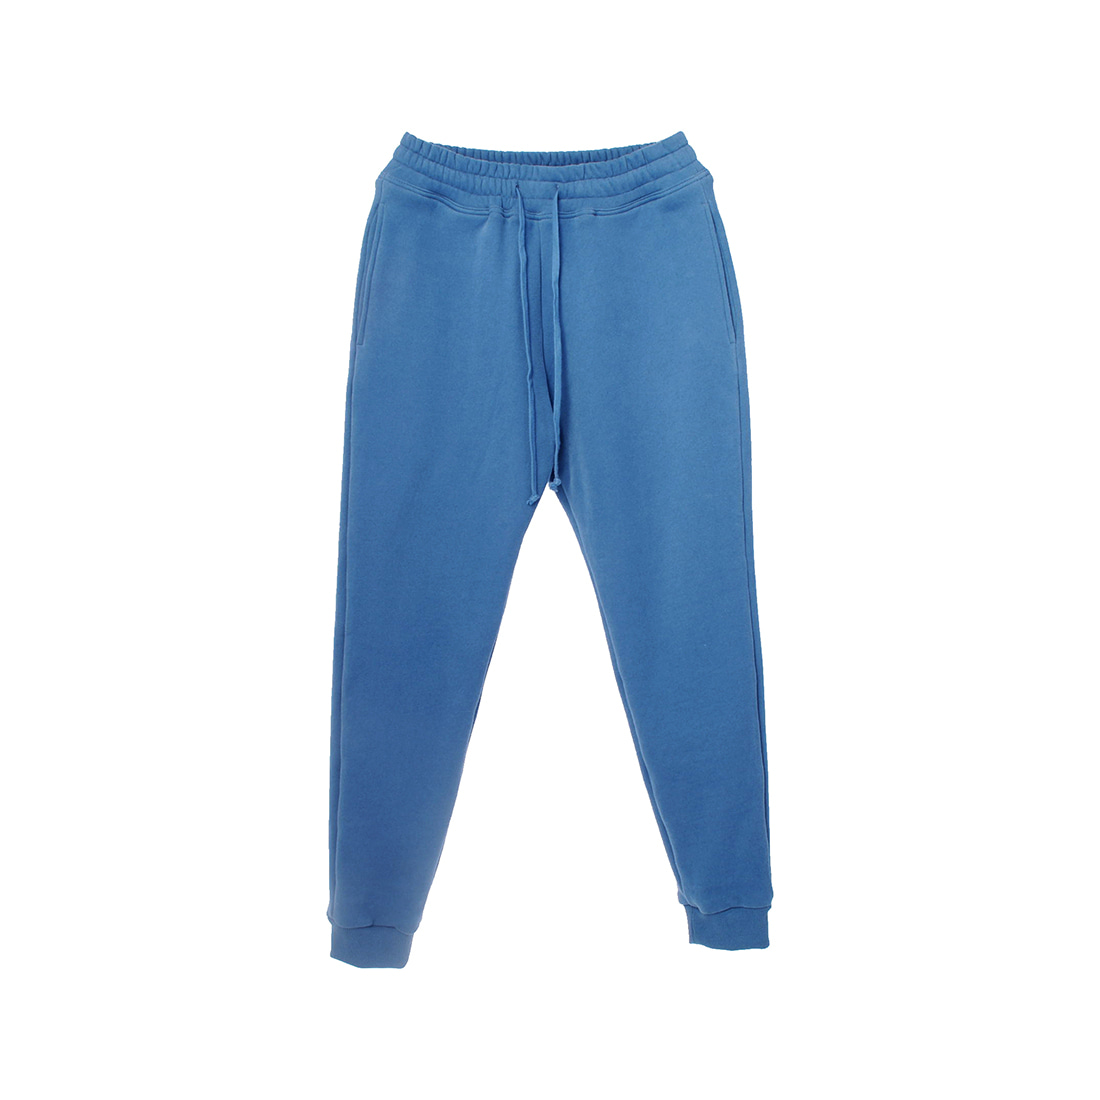 BLUE JEREY JOGGER PANTS